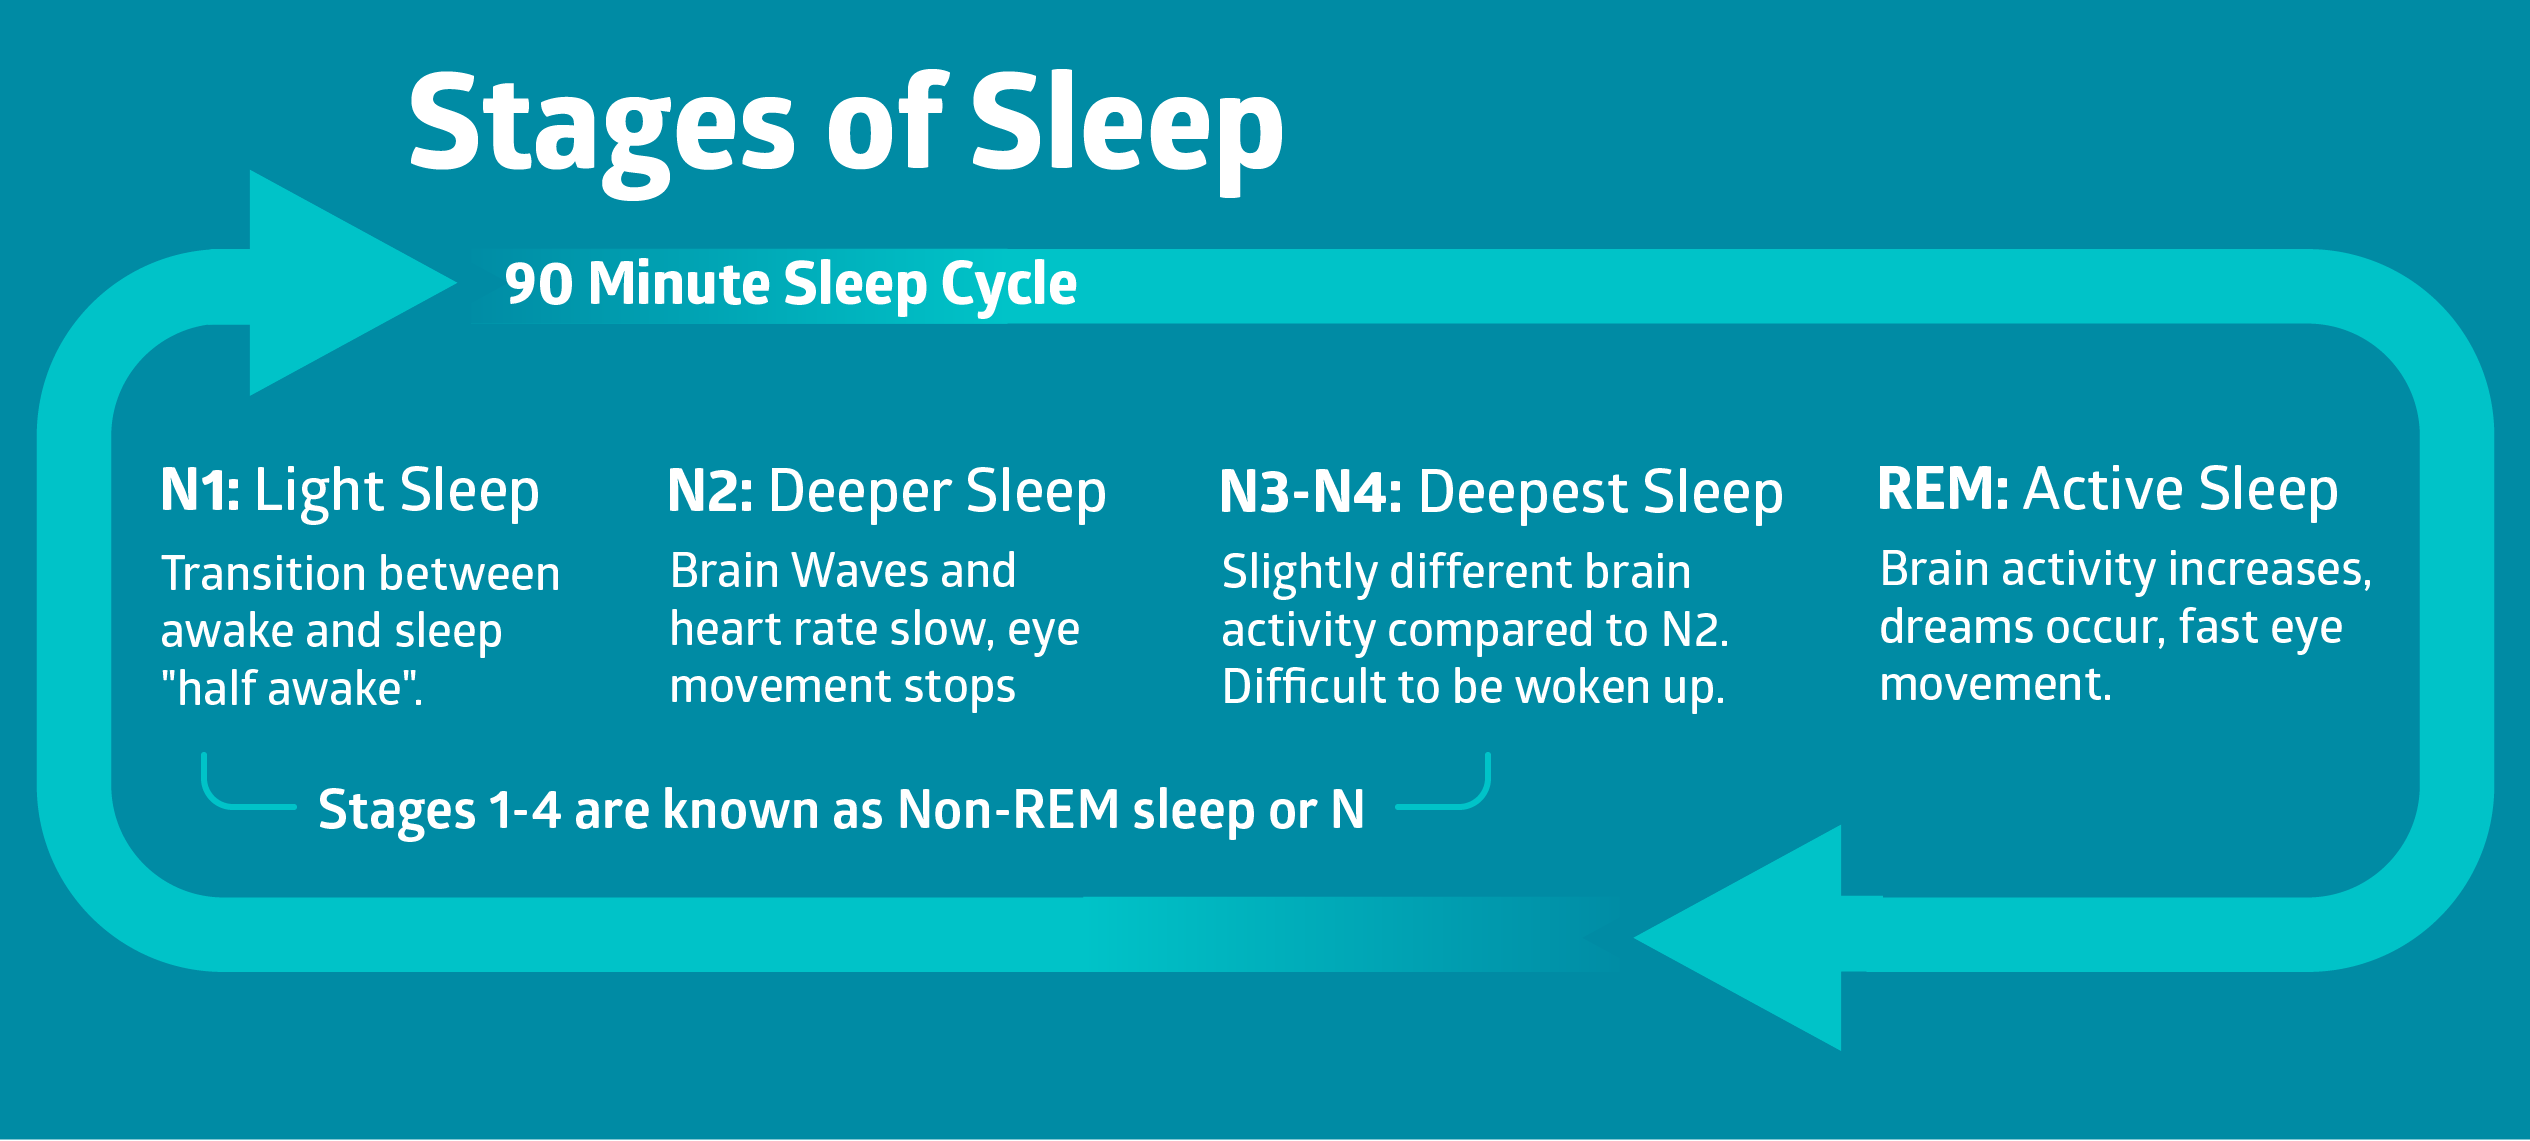 Stages of Sleep infographic